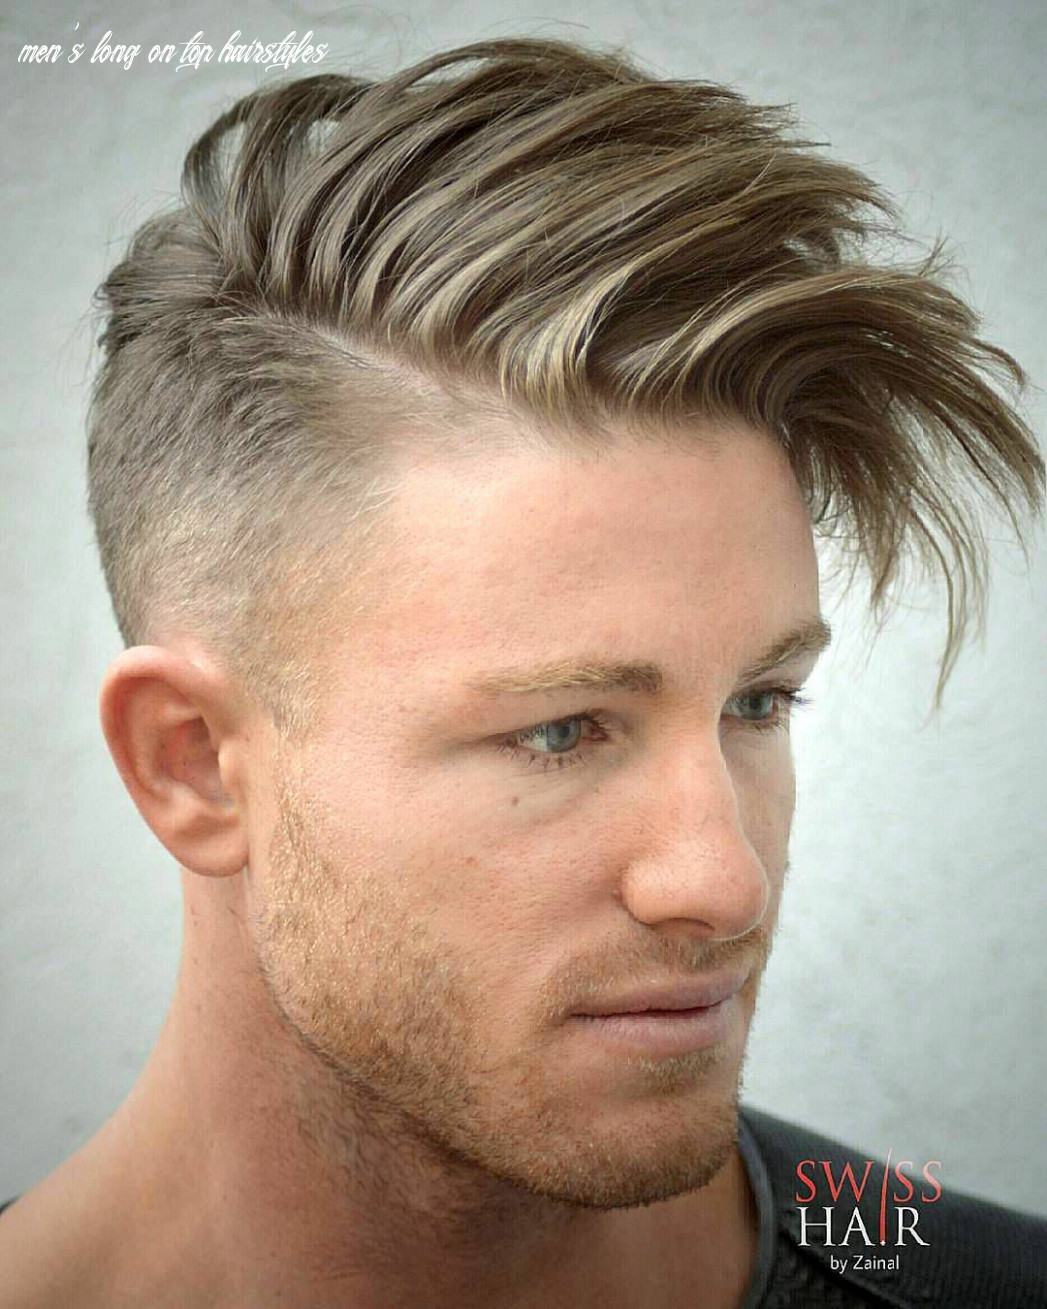 12 long haircuts hairstyles for men 1212 | long hair on top, top